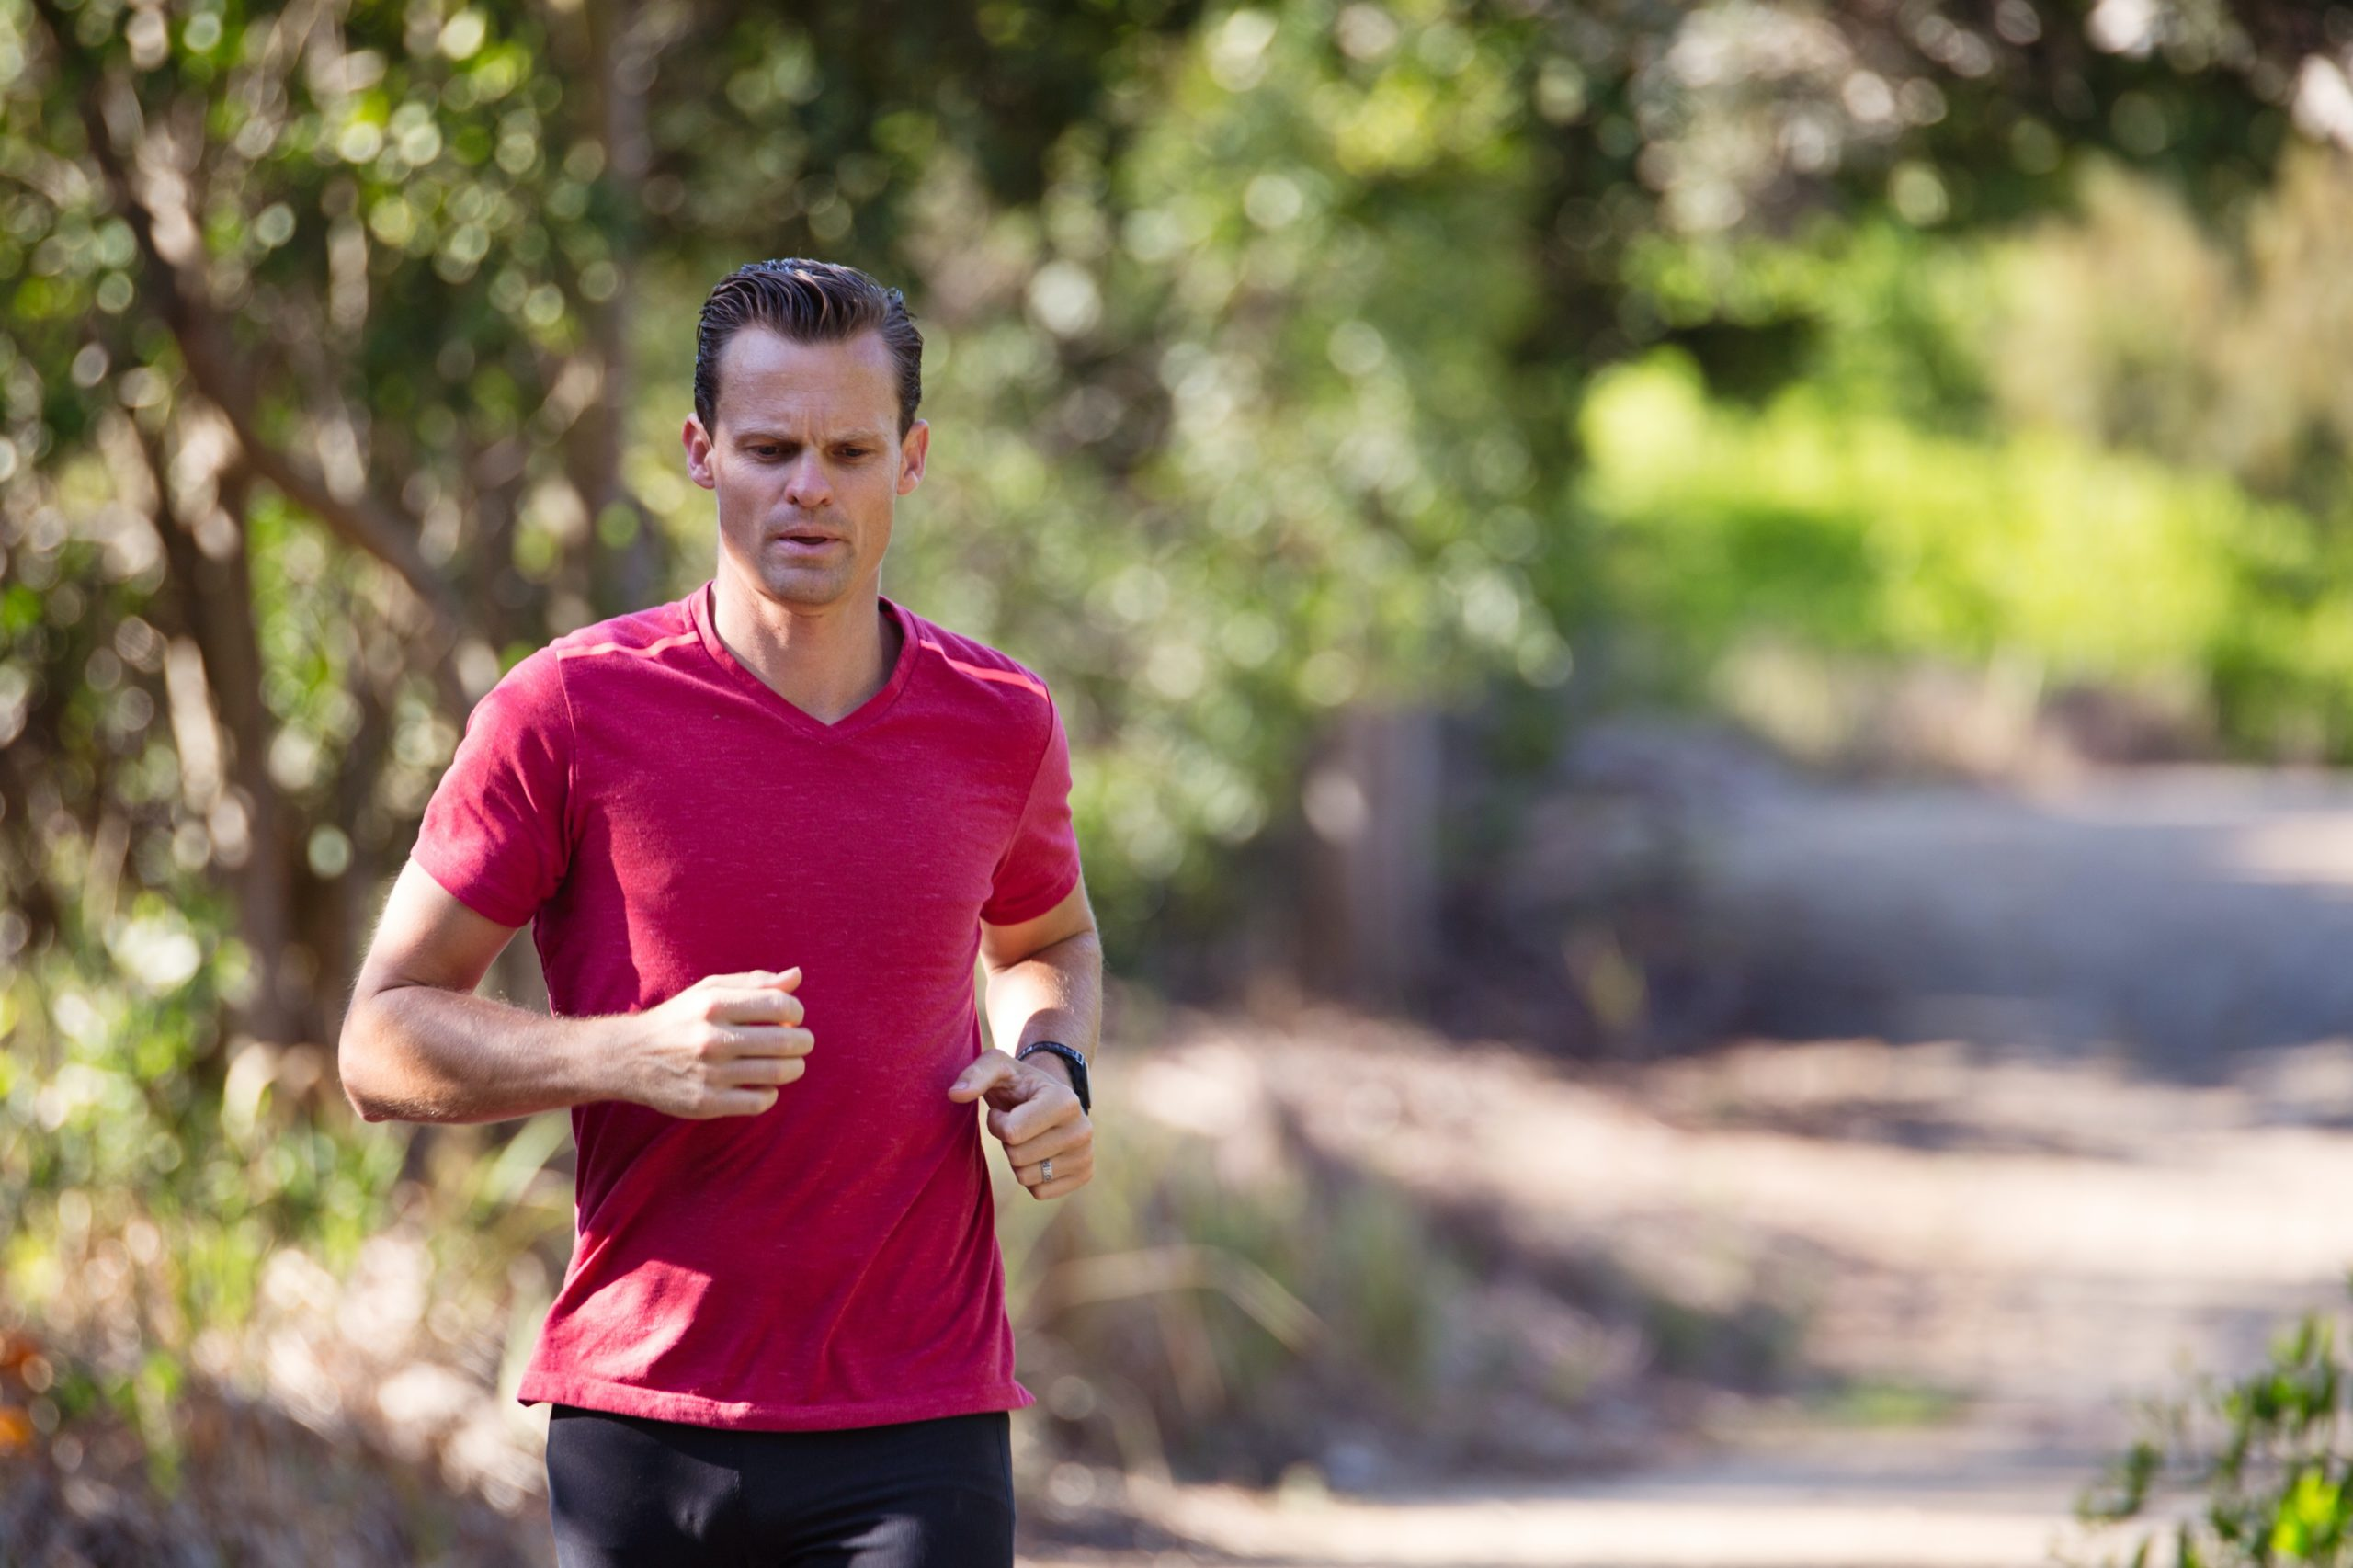 This man running is creating a healthy immune system.